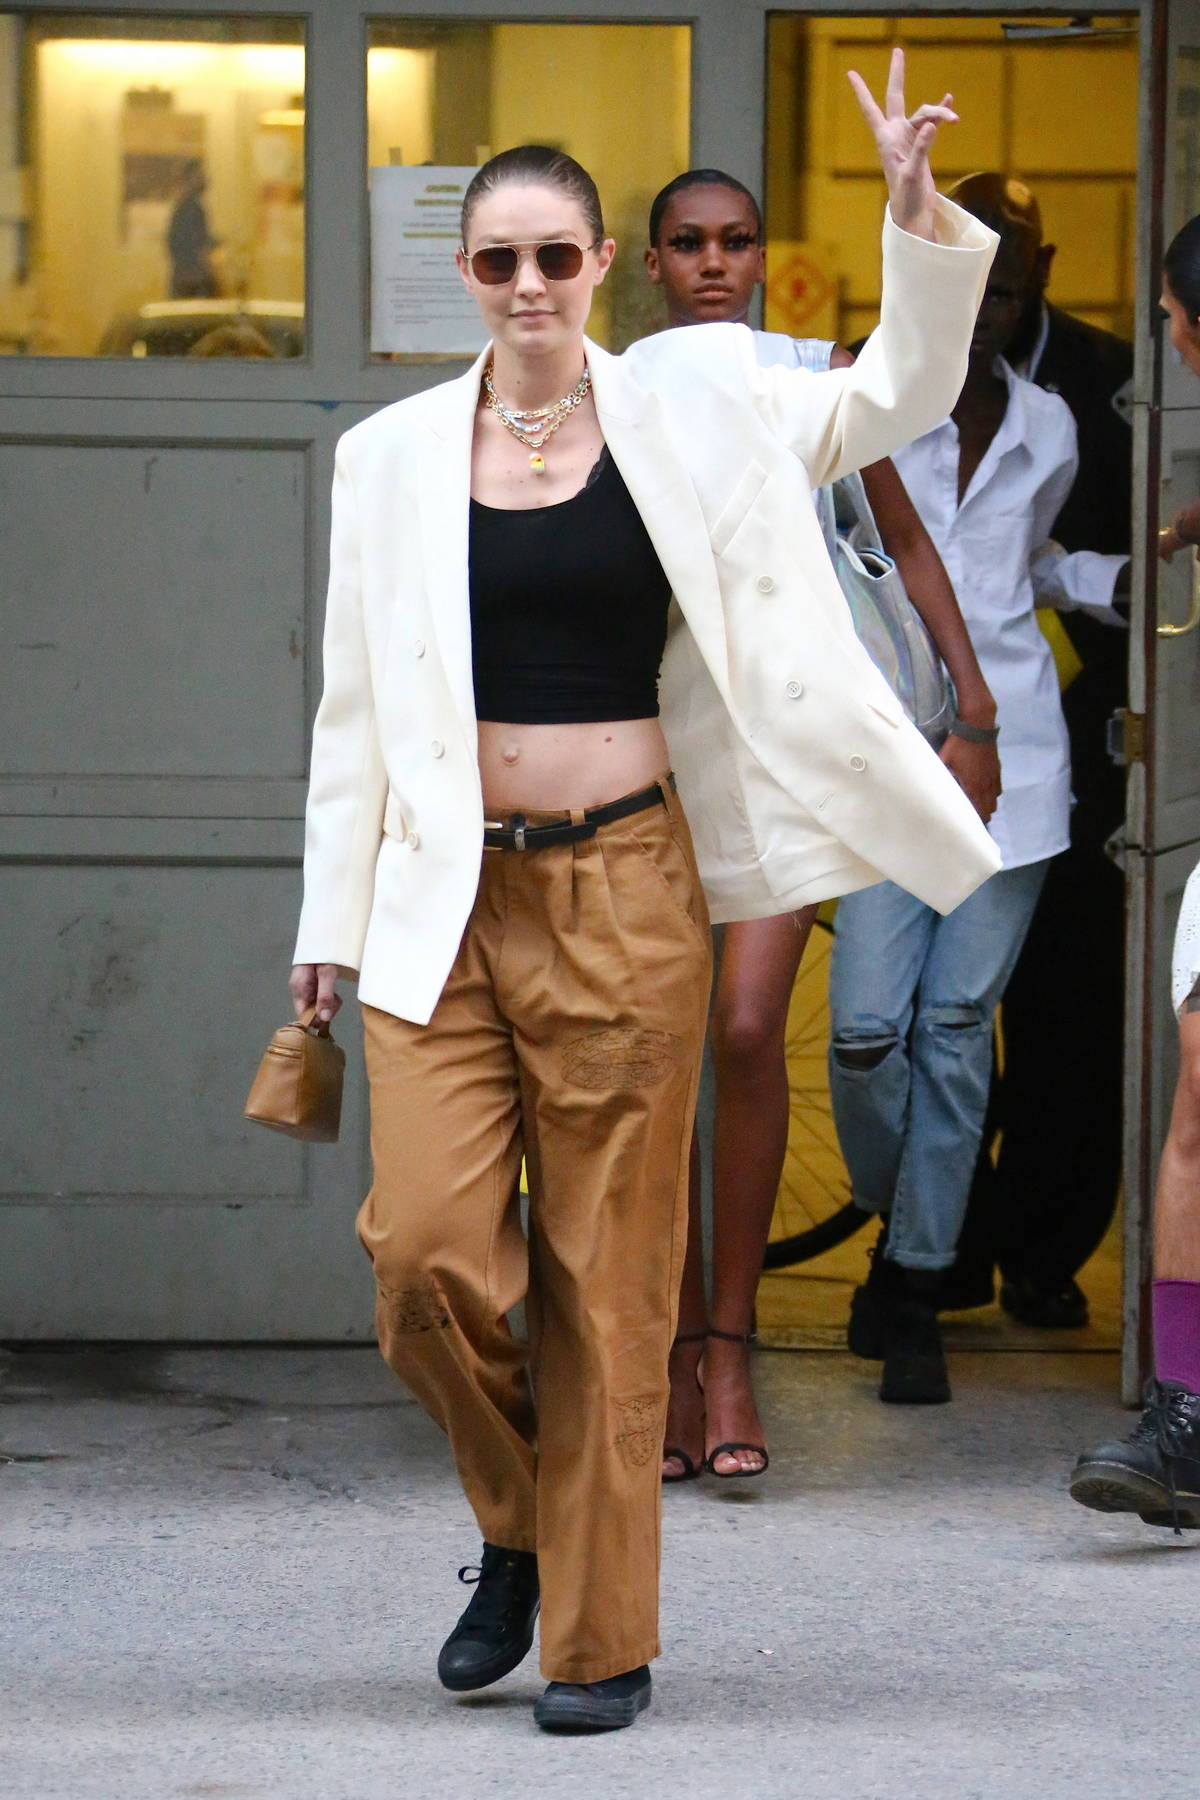 Gigi Hadid flashes her midriff as she leaves the Marc Jacobs Fashion show at the public Library in New York City